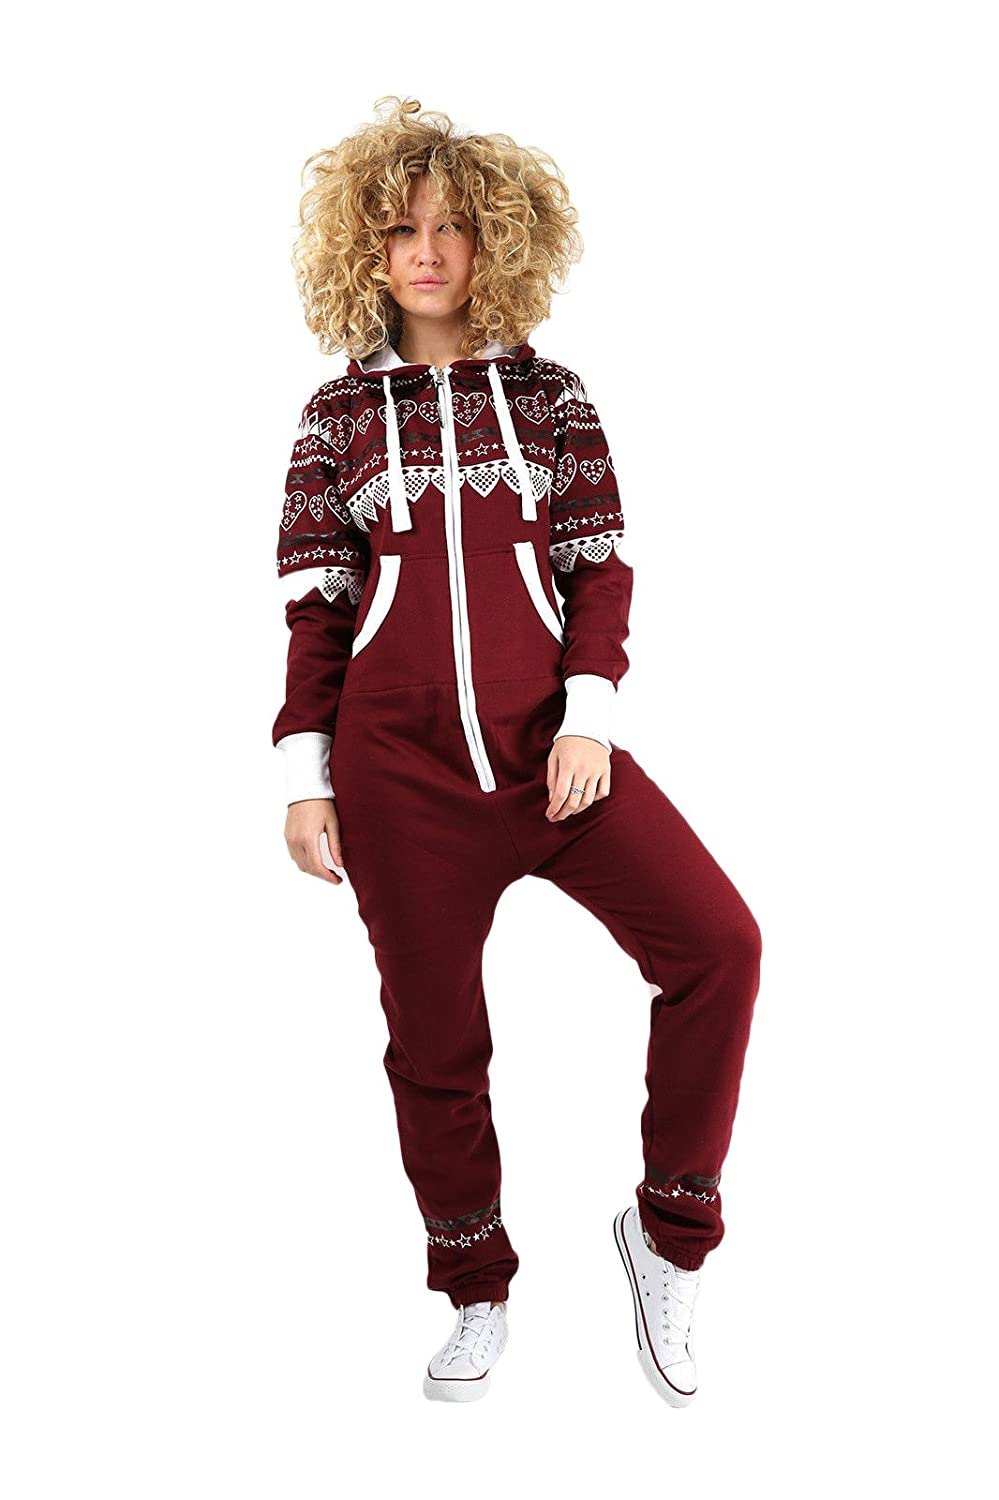 b64910bdc93c Parsa Fashions ® Womens Onesie Aztec Heart Print Ladies Jumpsuits One Piece  Onesie All in One Zip Up Hooded Onesie Tracksuit Playsuit Smll-XL (UK  8-14): ...